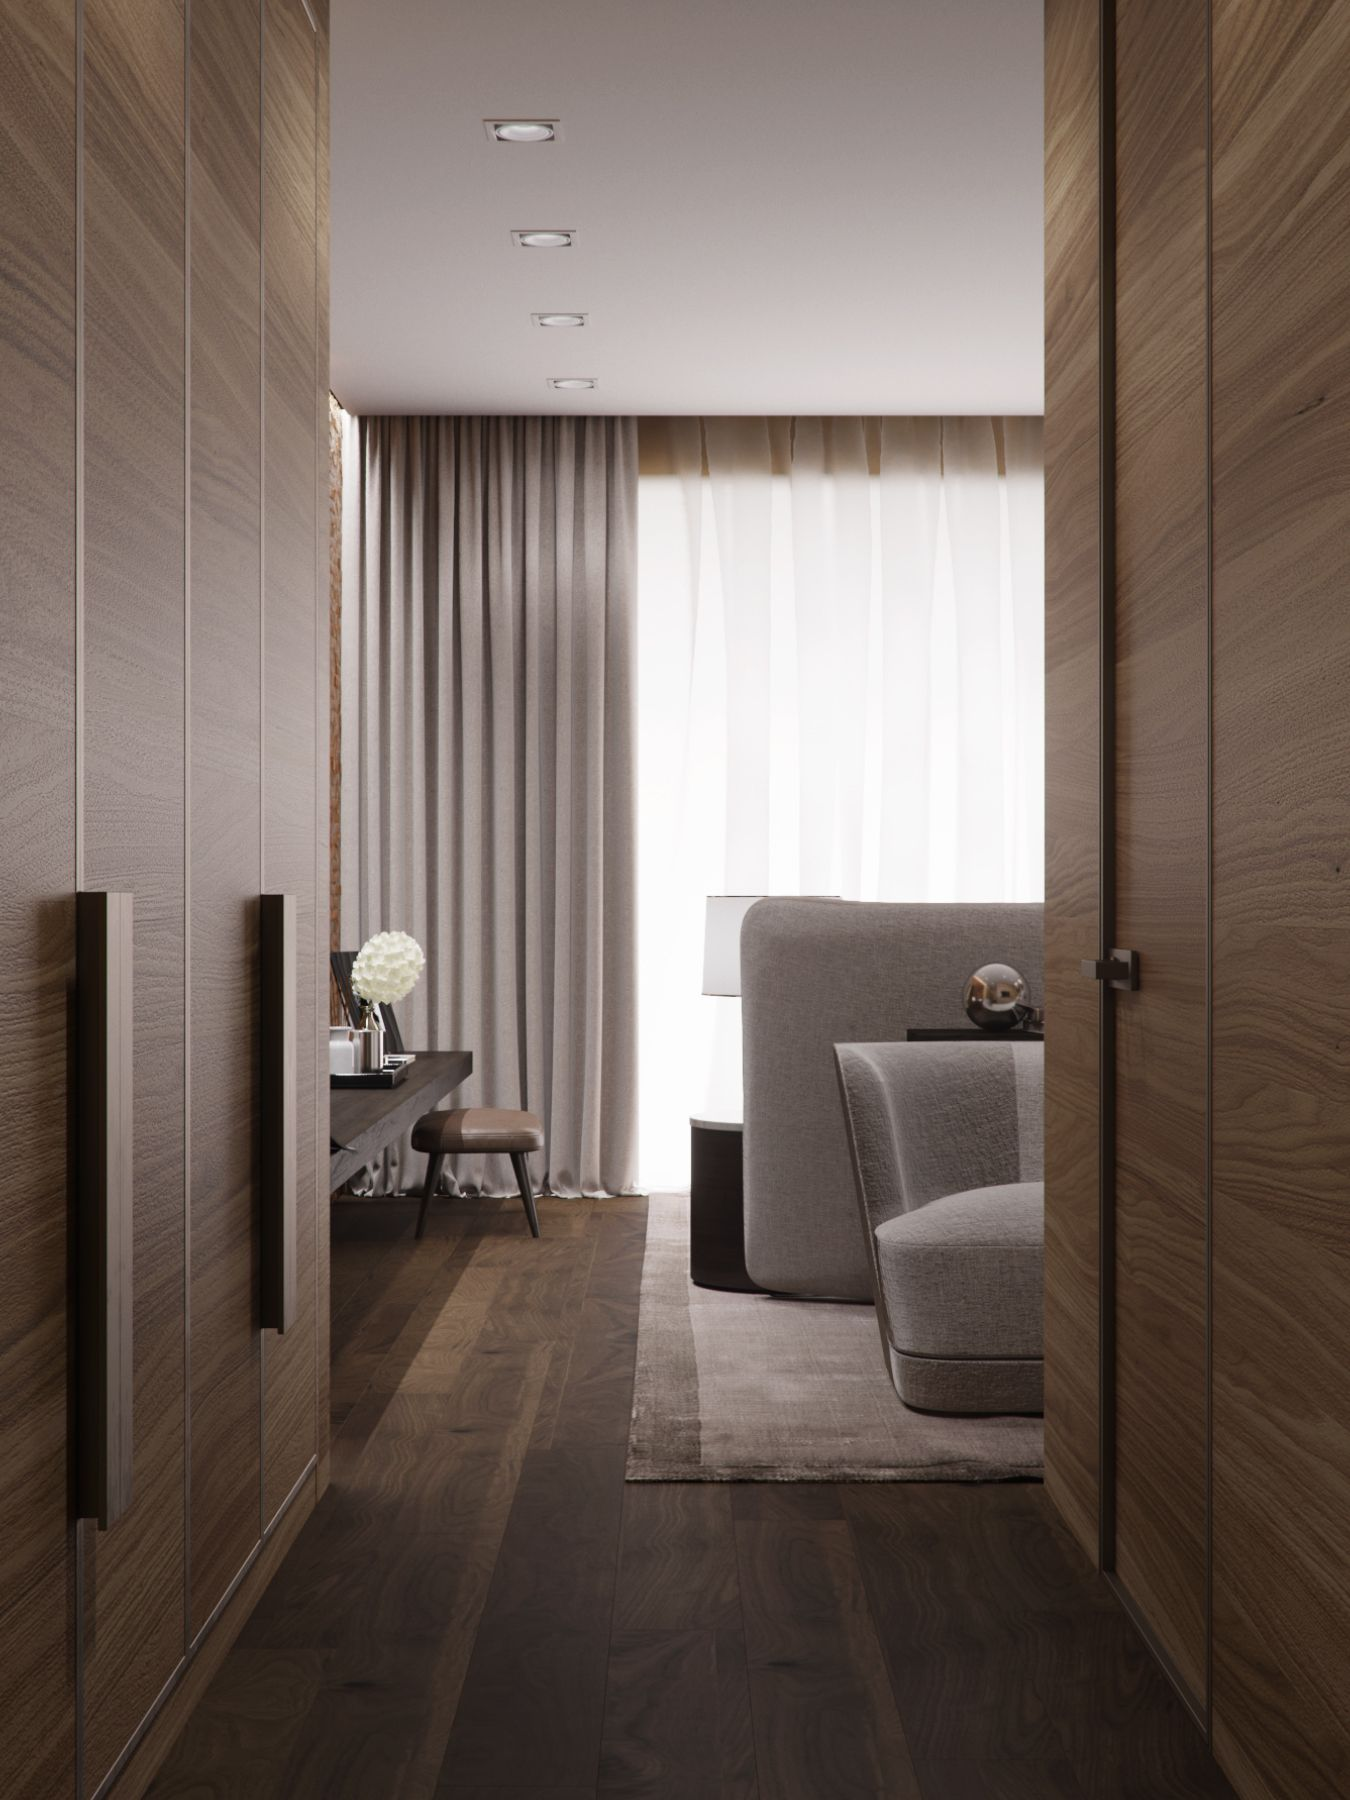 Hotel Room Design: 3D Rendering Of Hotel Rooms